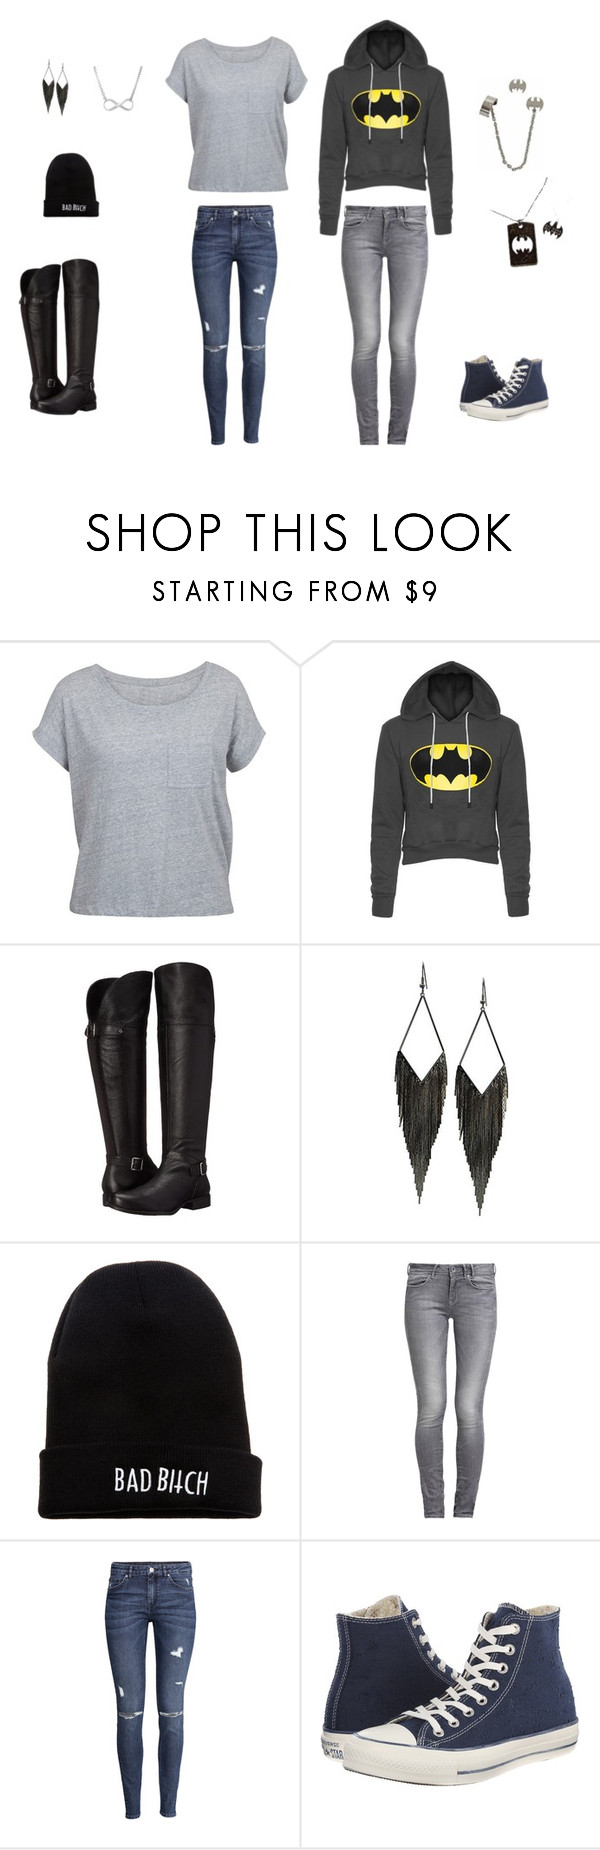 Addison Hart by lovebugemma64 on Polyvore featuring H&M, GUESS, Naturalizer, Converse and Kill Brand